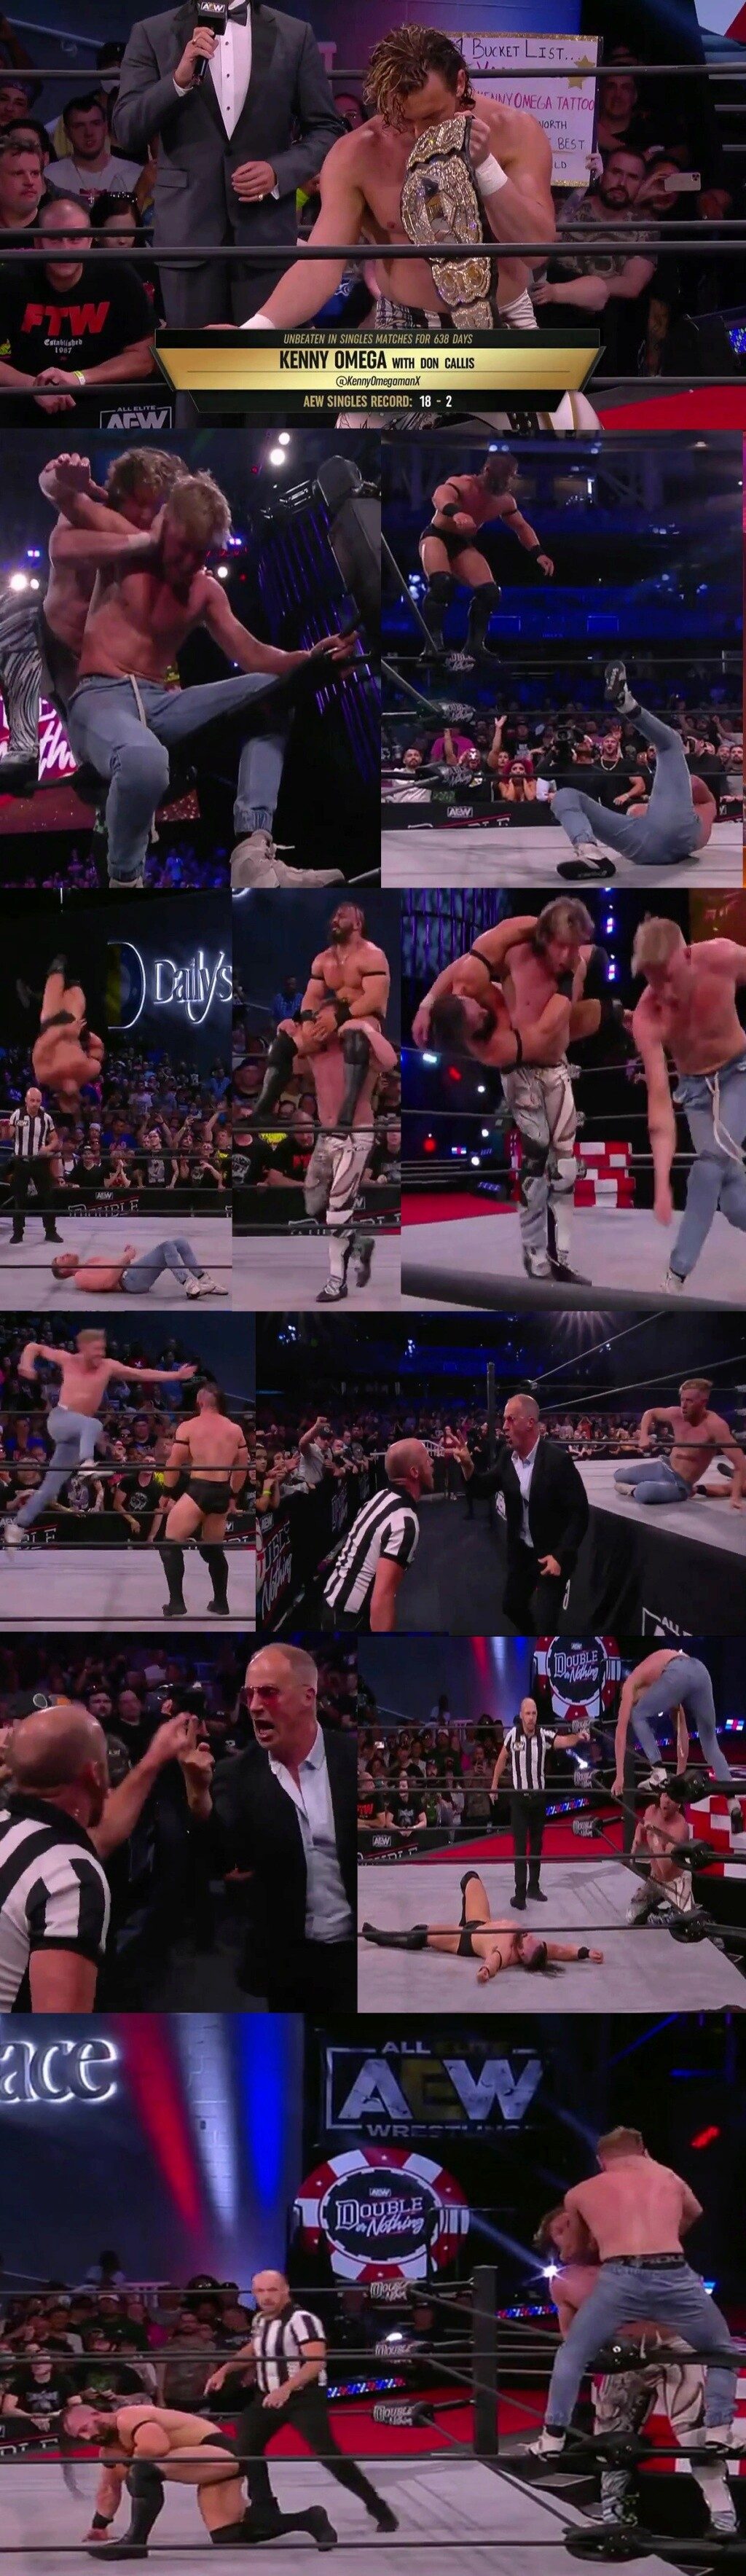 Official Wrestling PPV Topics: WWE Extreme Rules Results! - Page 3 Aew_do66